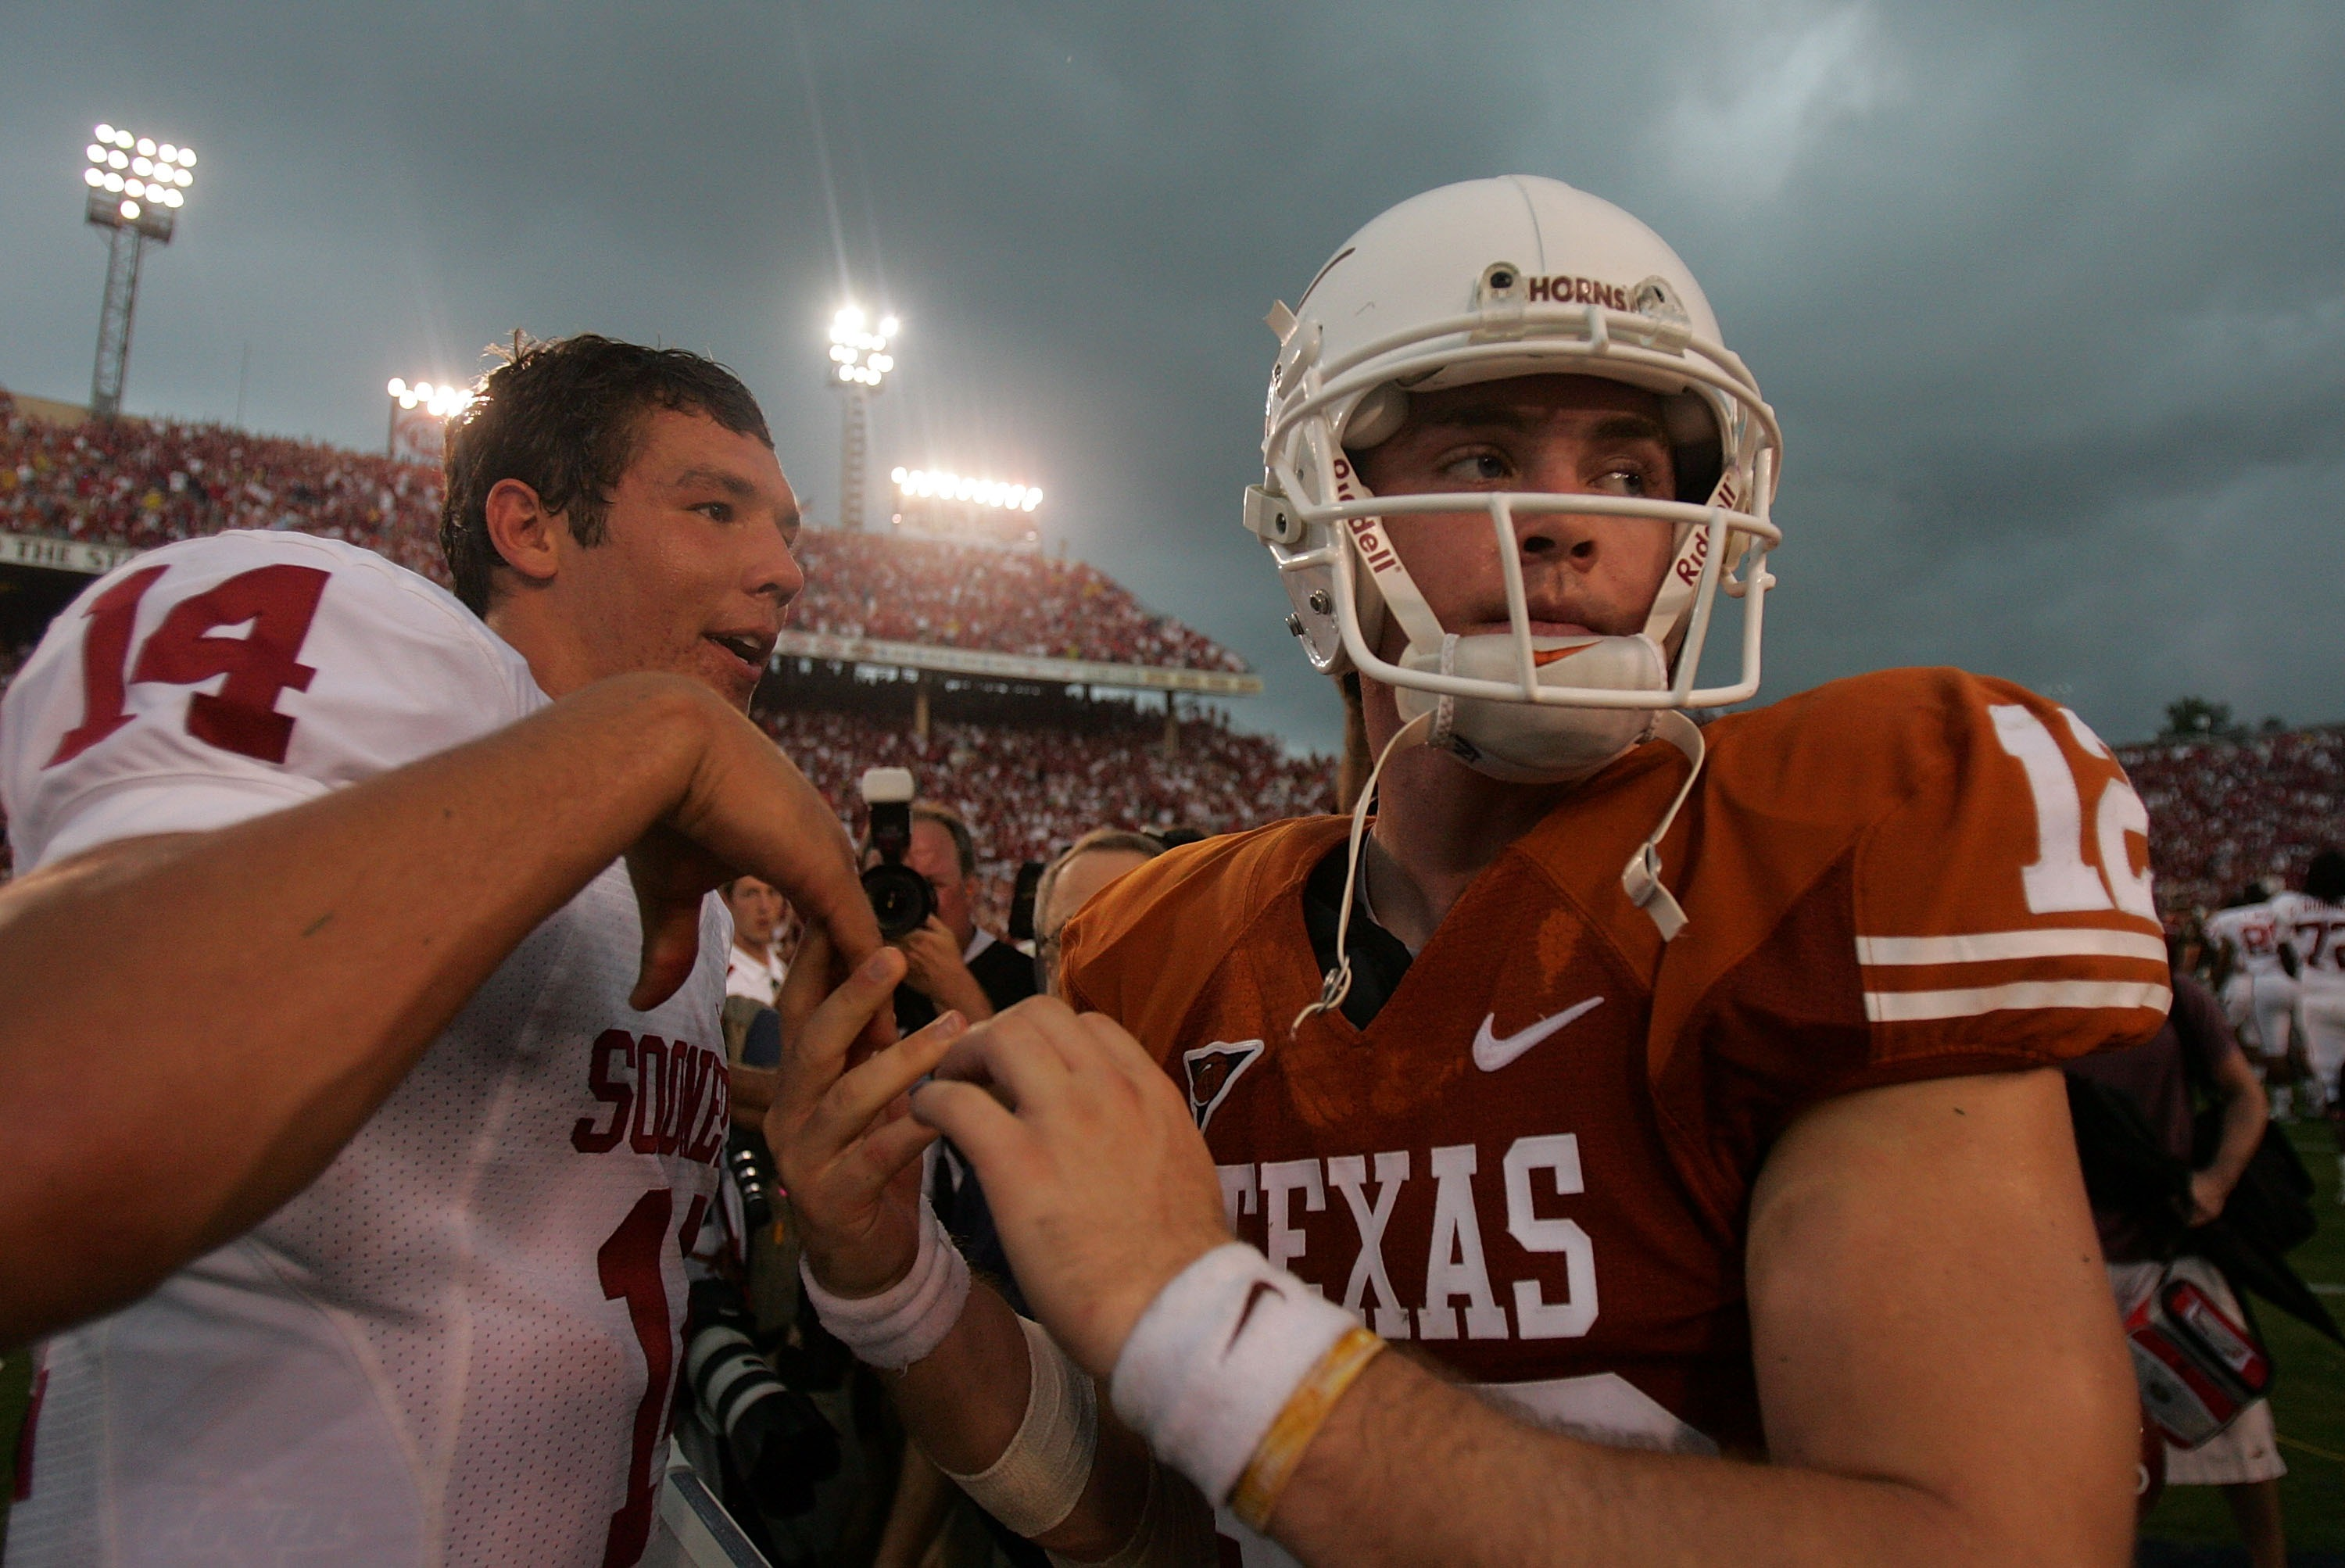 DALLAS - OCTOBER 6:  Quarterback Sam Bradford #14 of the Oklahoma Sooners and Colt McCoy of the Texas Longhorns after the Sooners defeated the Longhorns 28-21 at the Cotton Bowl October 6, 2007 in Dallas, Texas.  (Photo by Ronald Martinez/Getty Images)